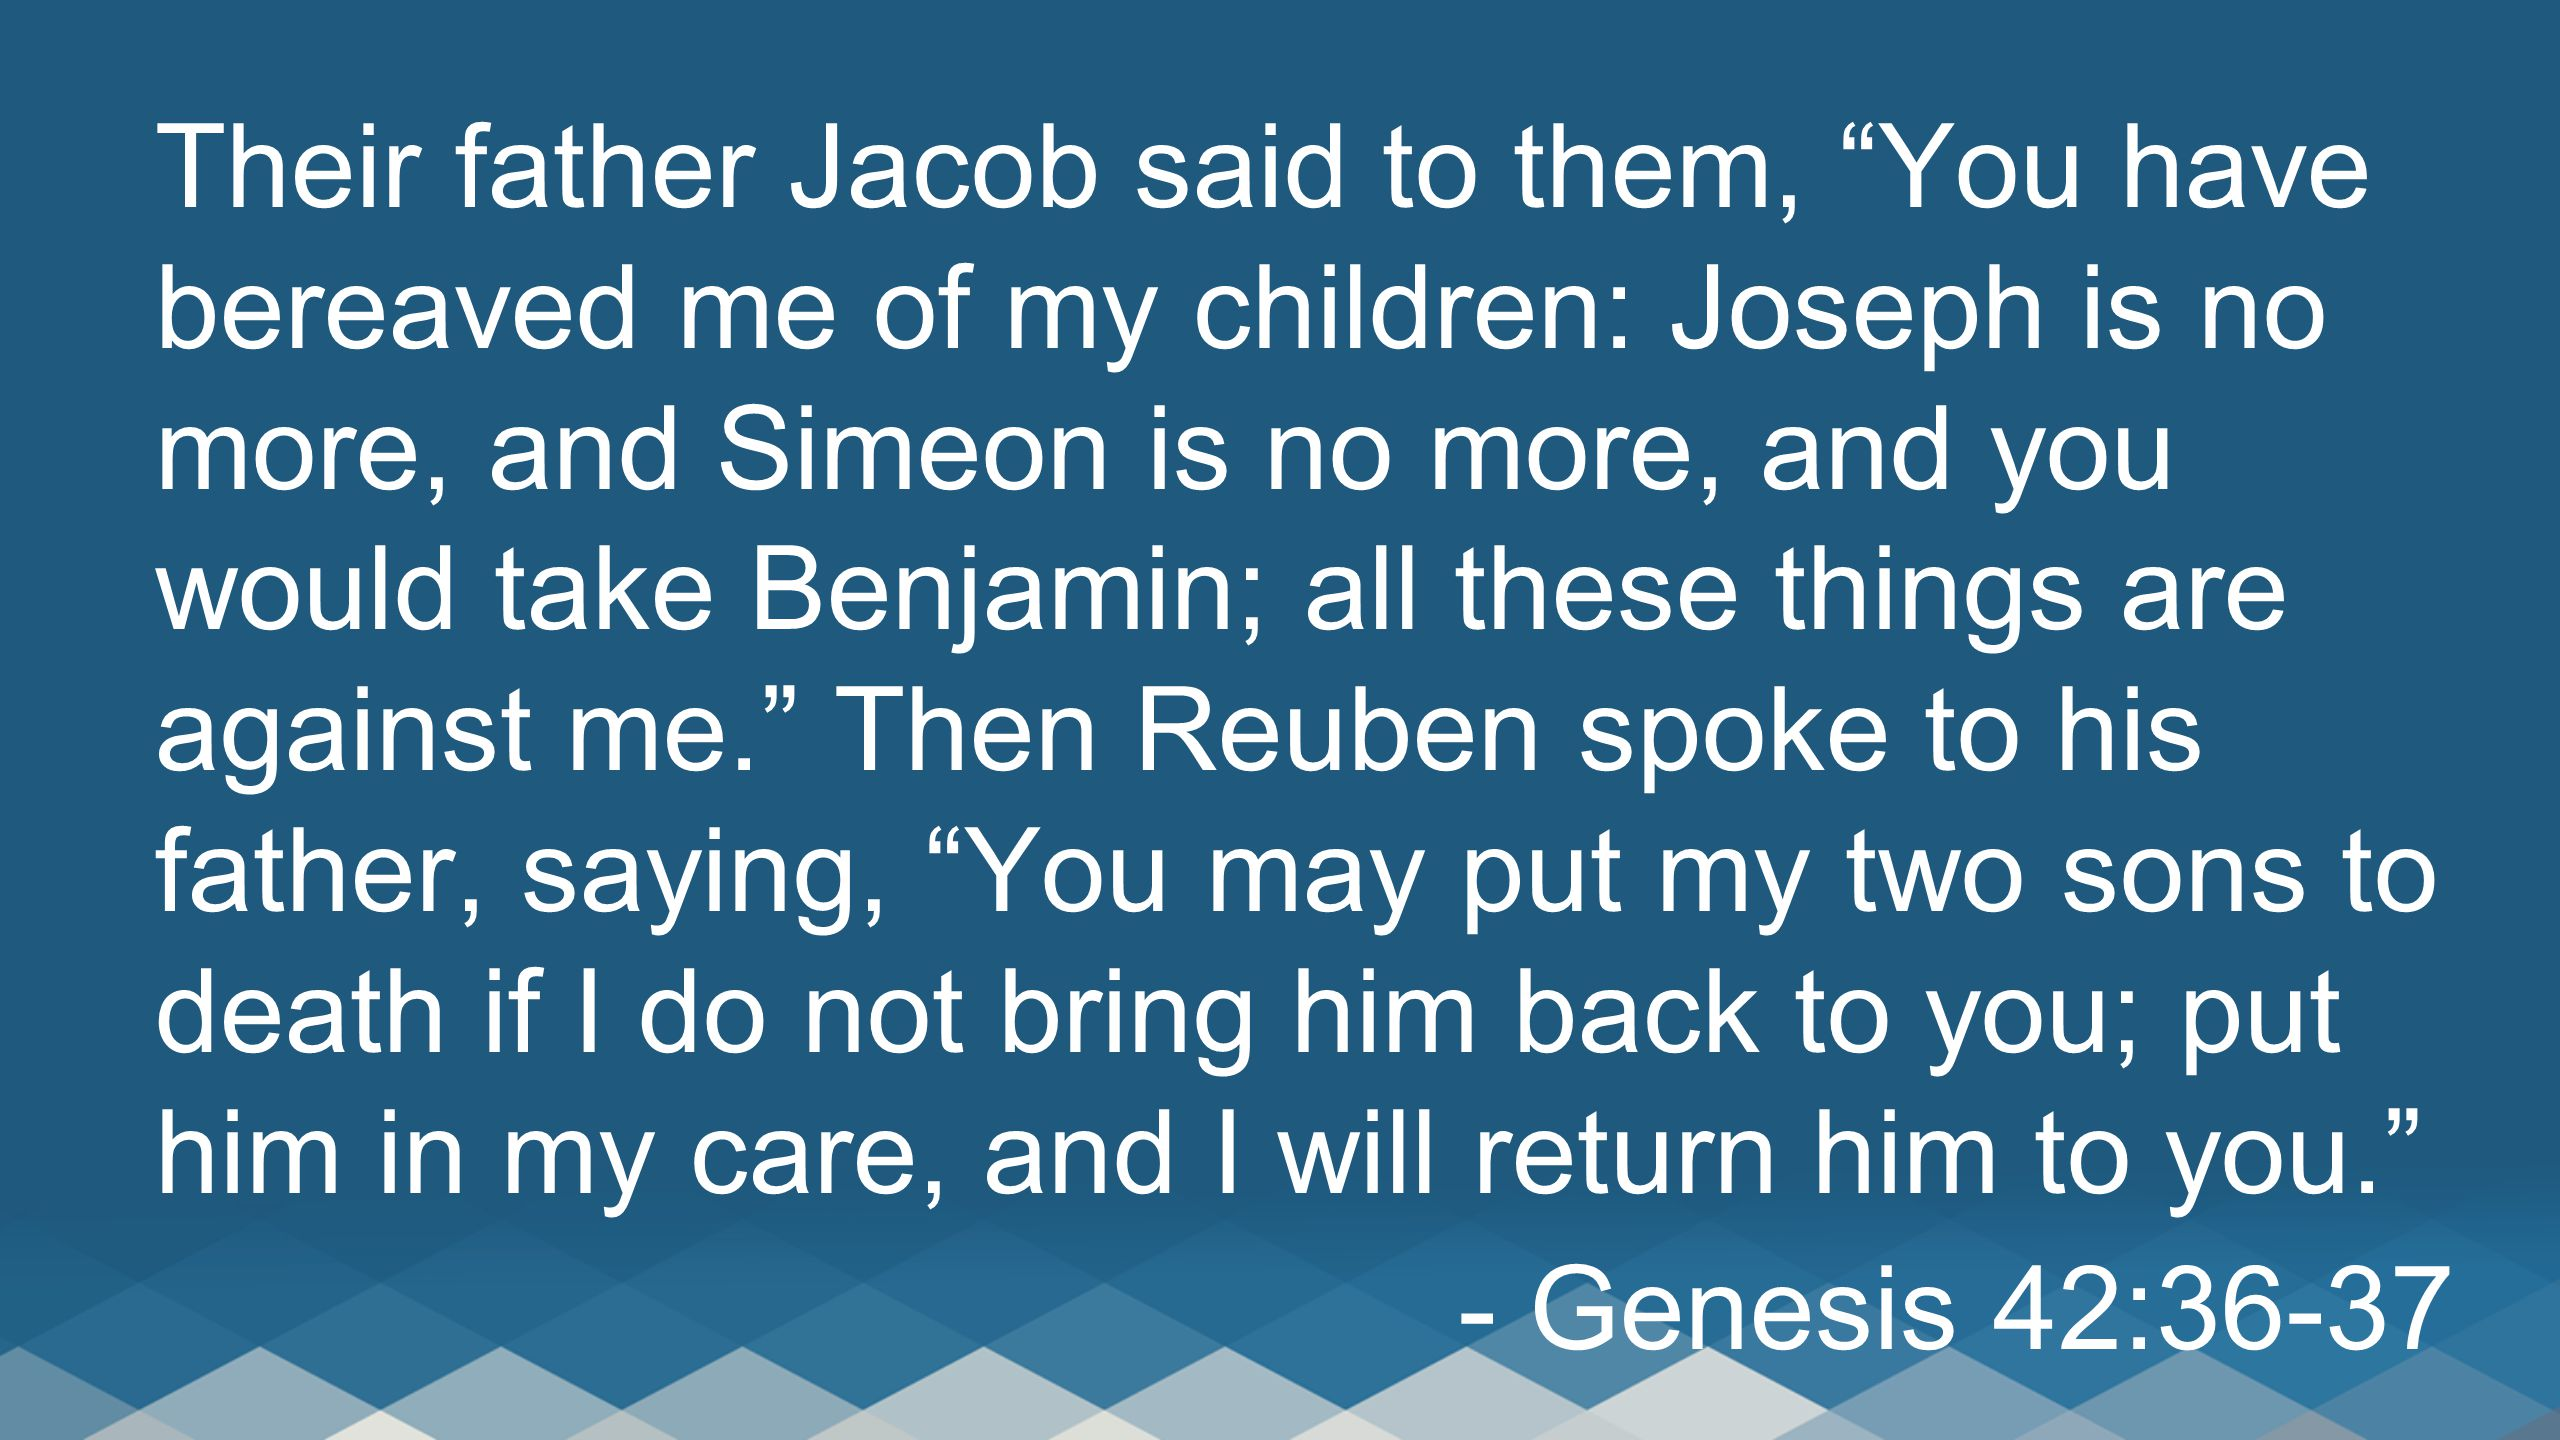 Their father Jacob said to them, You have bereaved me of my children: Joseph is no more, and Simeon is no more, and you would take Benjamin; all these things are against me. Then Reuben spoke to his father, saying, You may put my two sons to death if I do not bring him back to you; put him in my care, and I will return him to you.